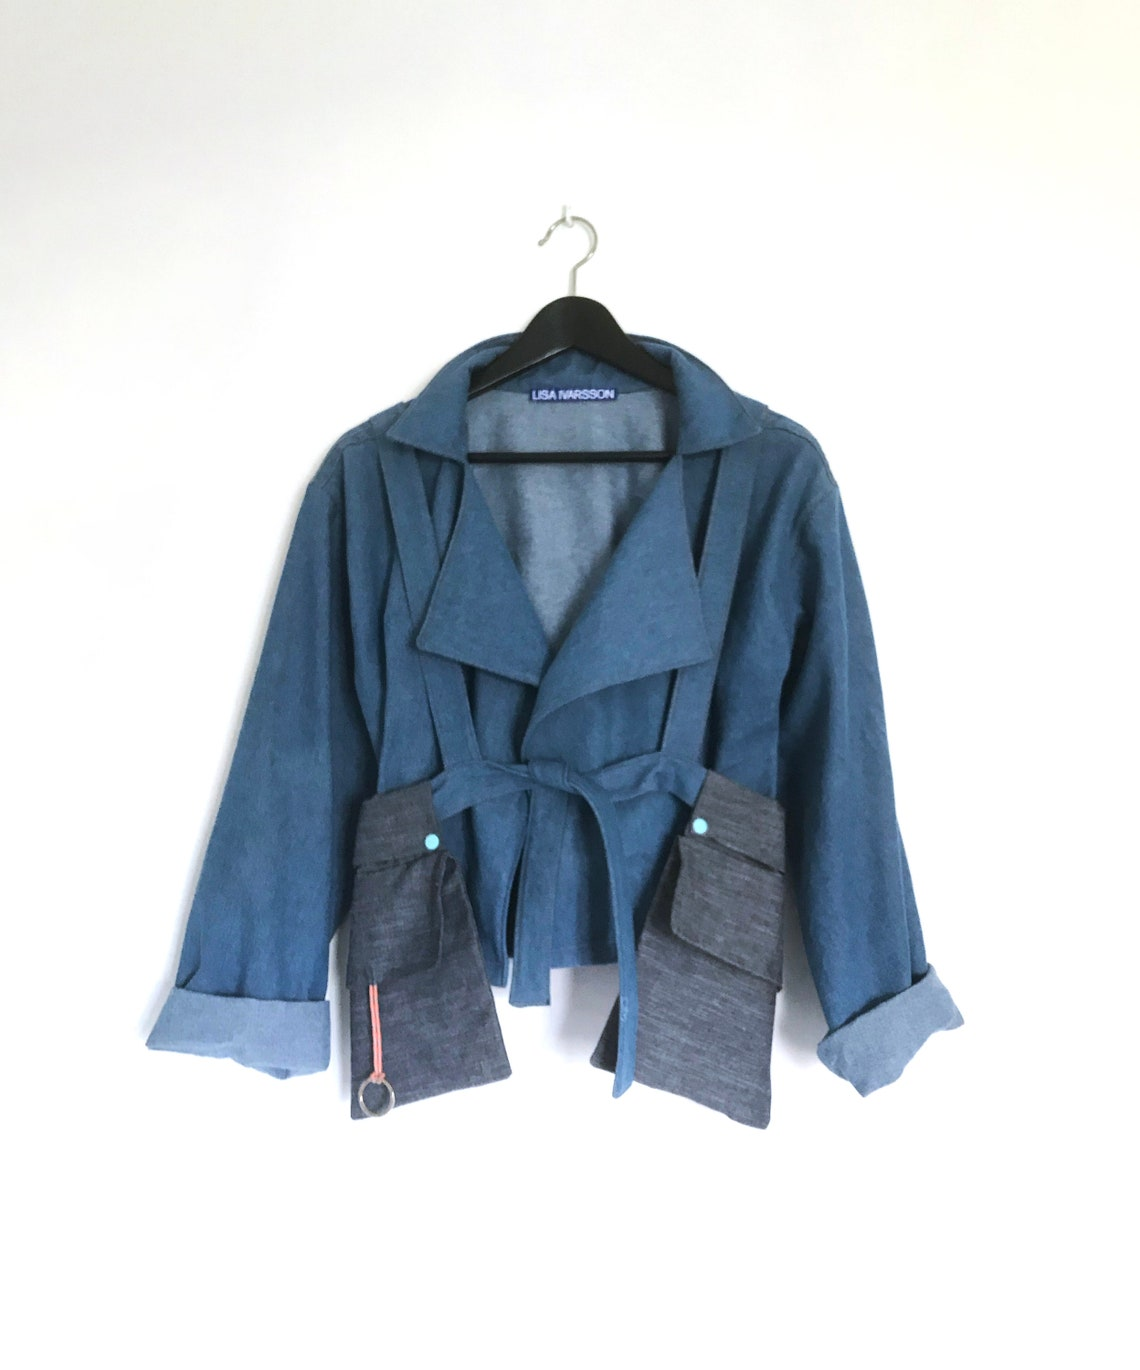 Jeans Jacket - Americano Attachable Backpack/pockets Denim 2 Kinds Of Blue Jackets In 1